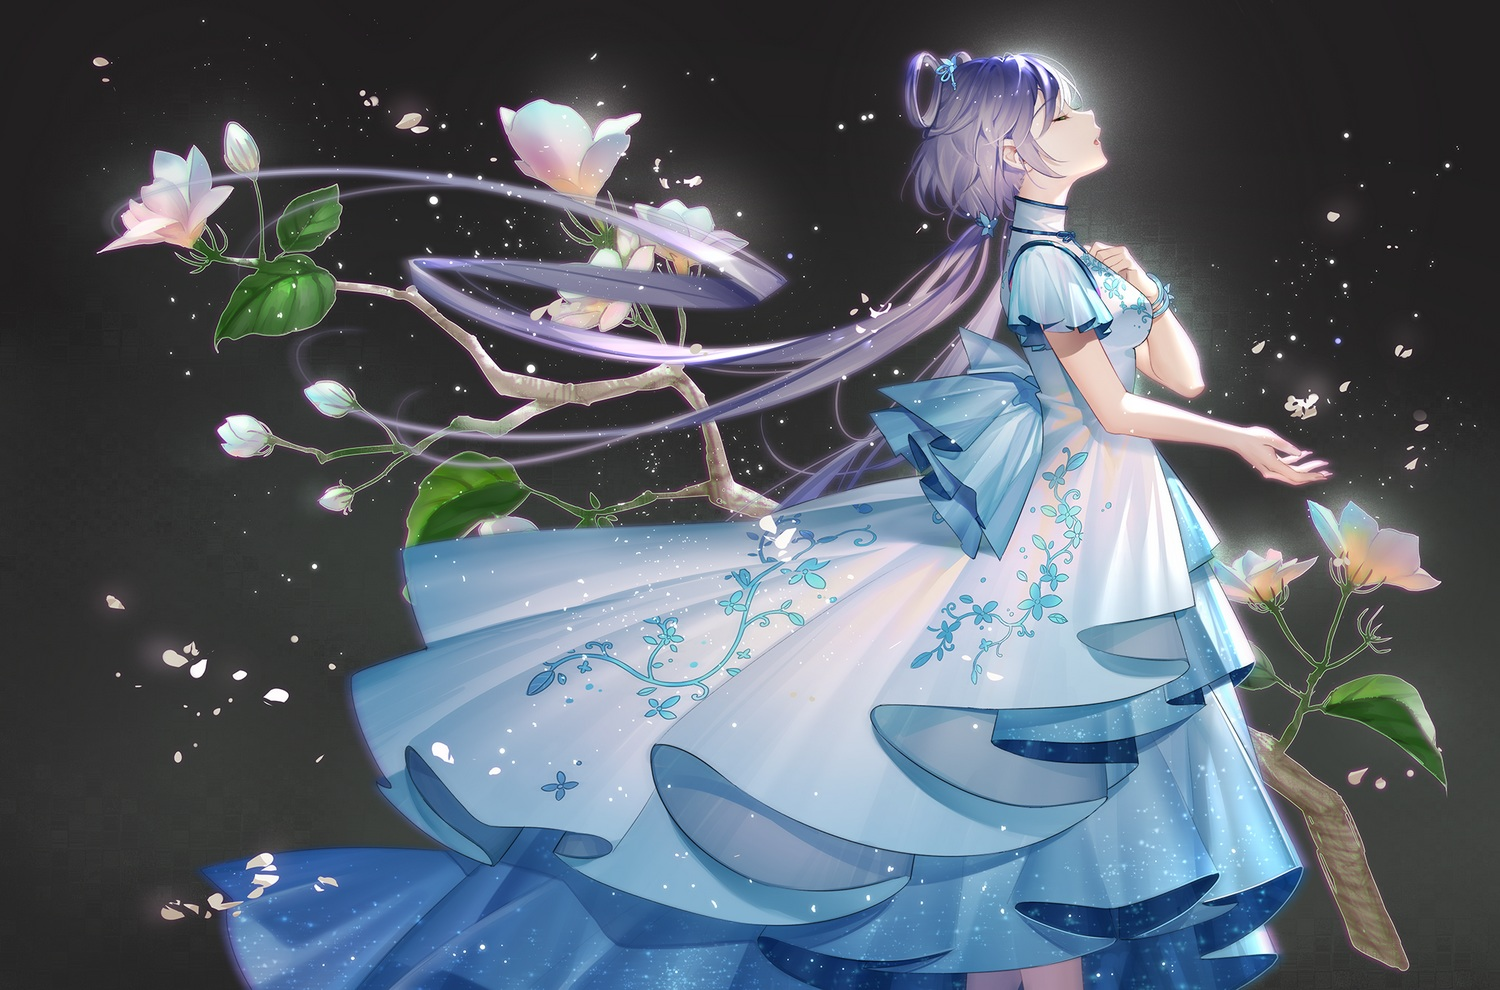 chinese_clothes chinese_dress dress flowers gray long_hair luo_tianyi purple_hair tidsean twintails vocaloid vocaloid_china wristwear